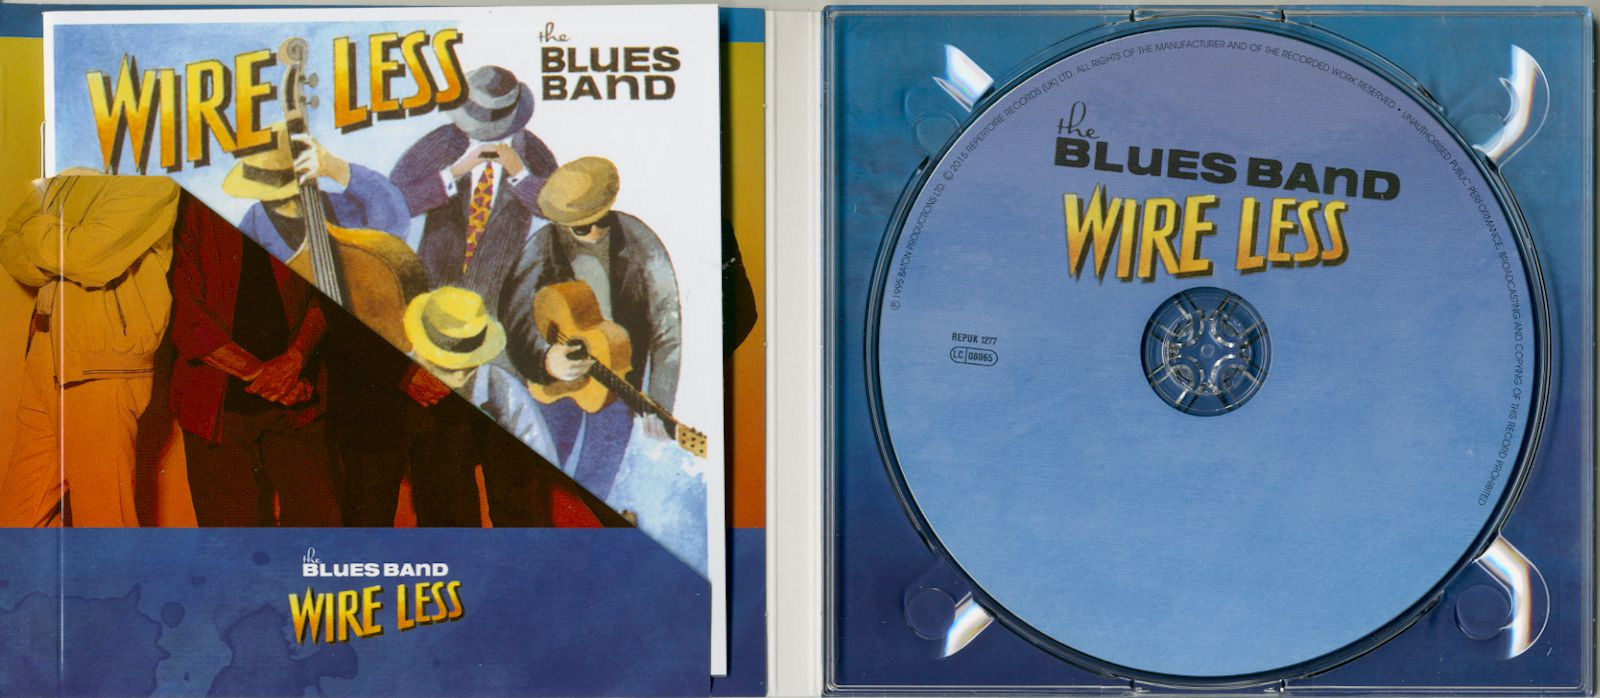 The Blues Band Wire Less